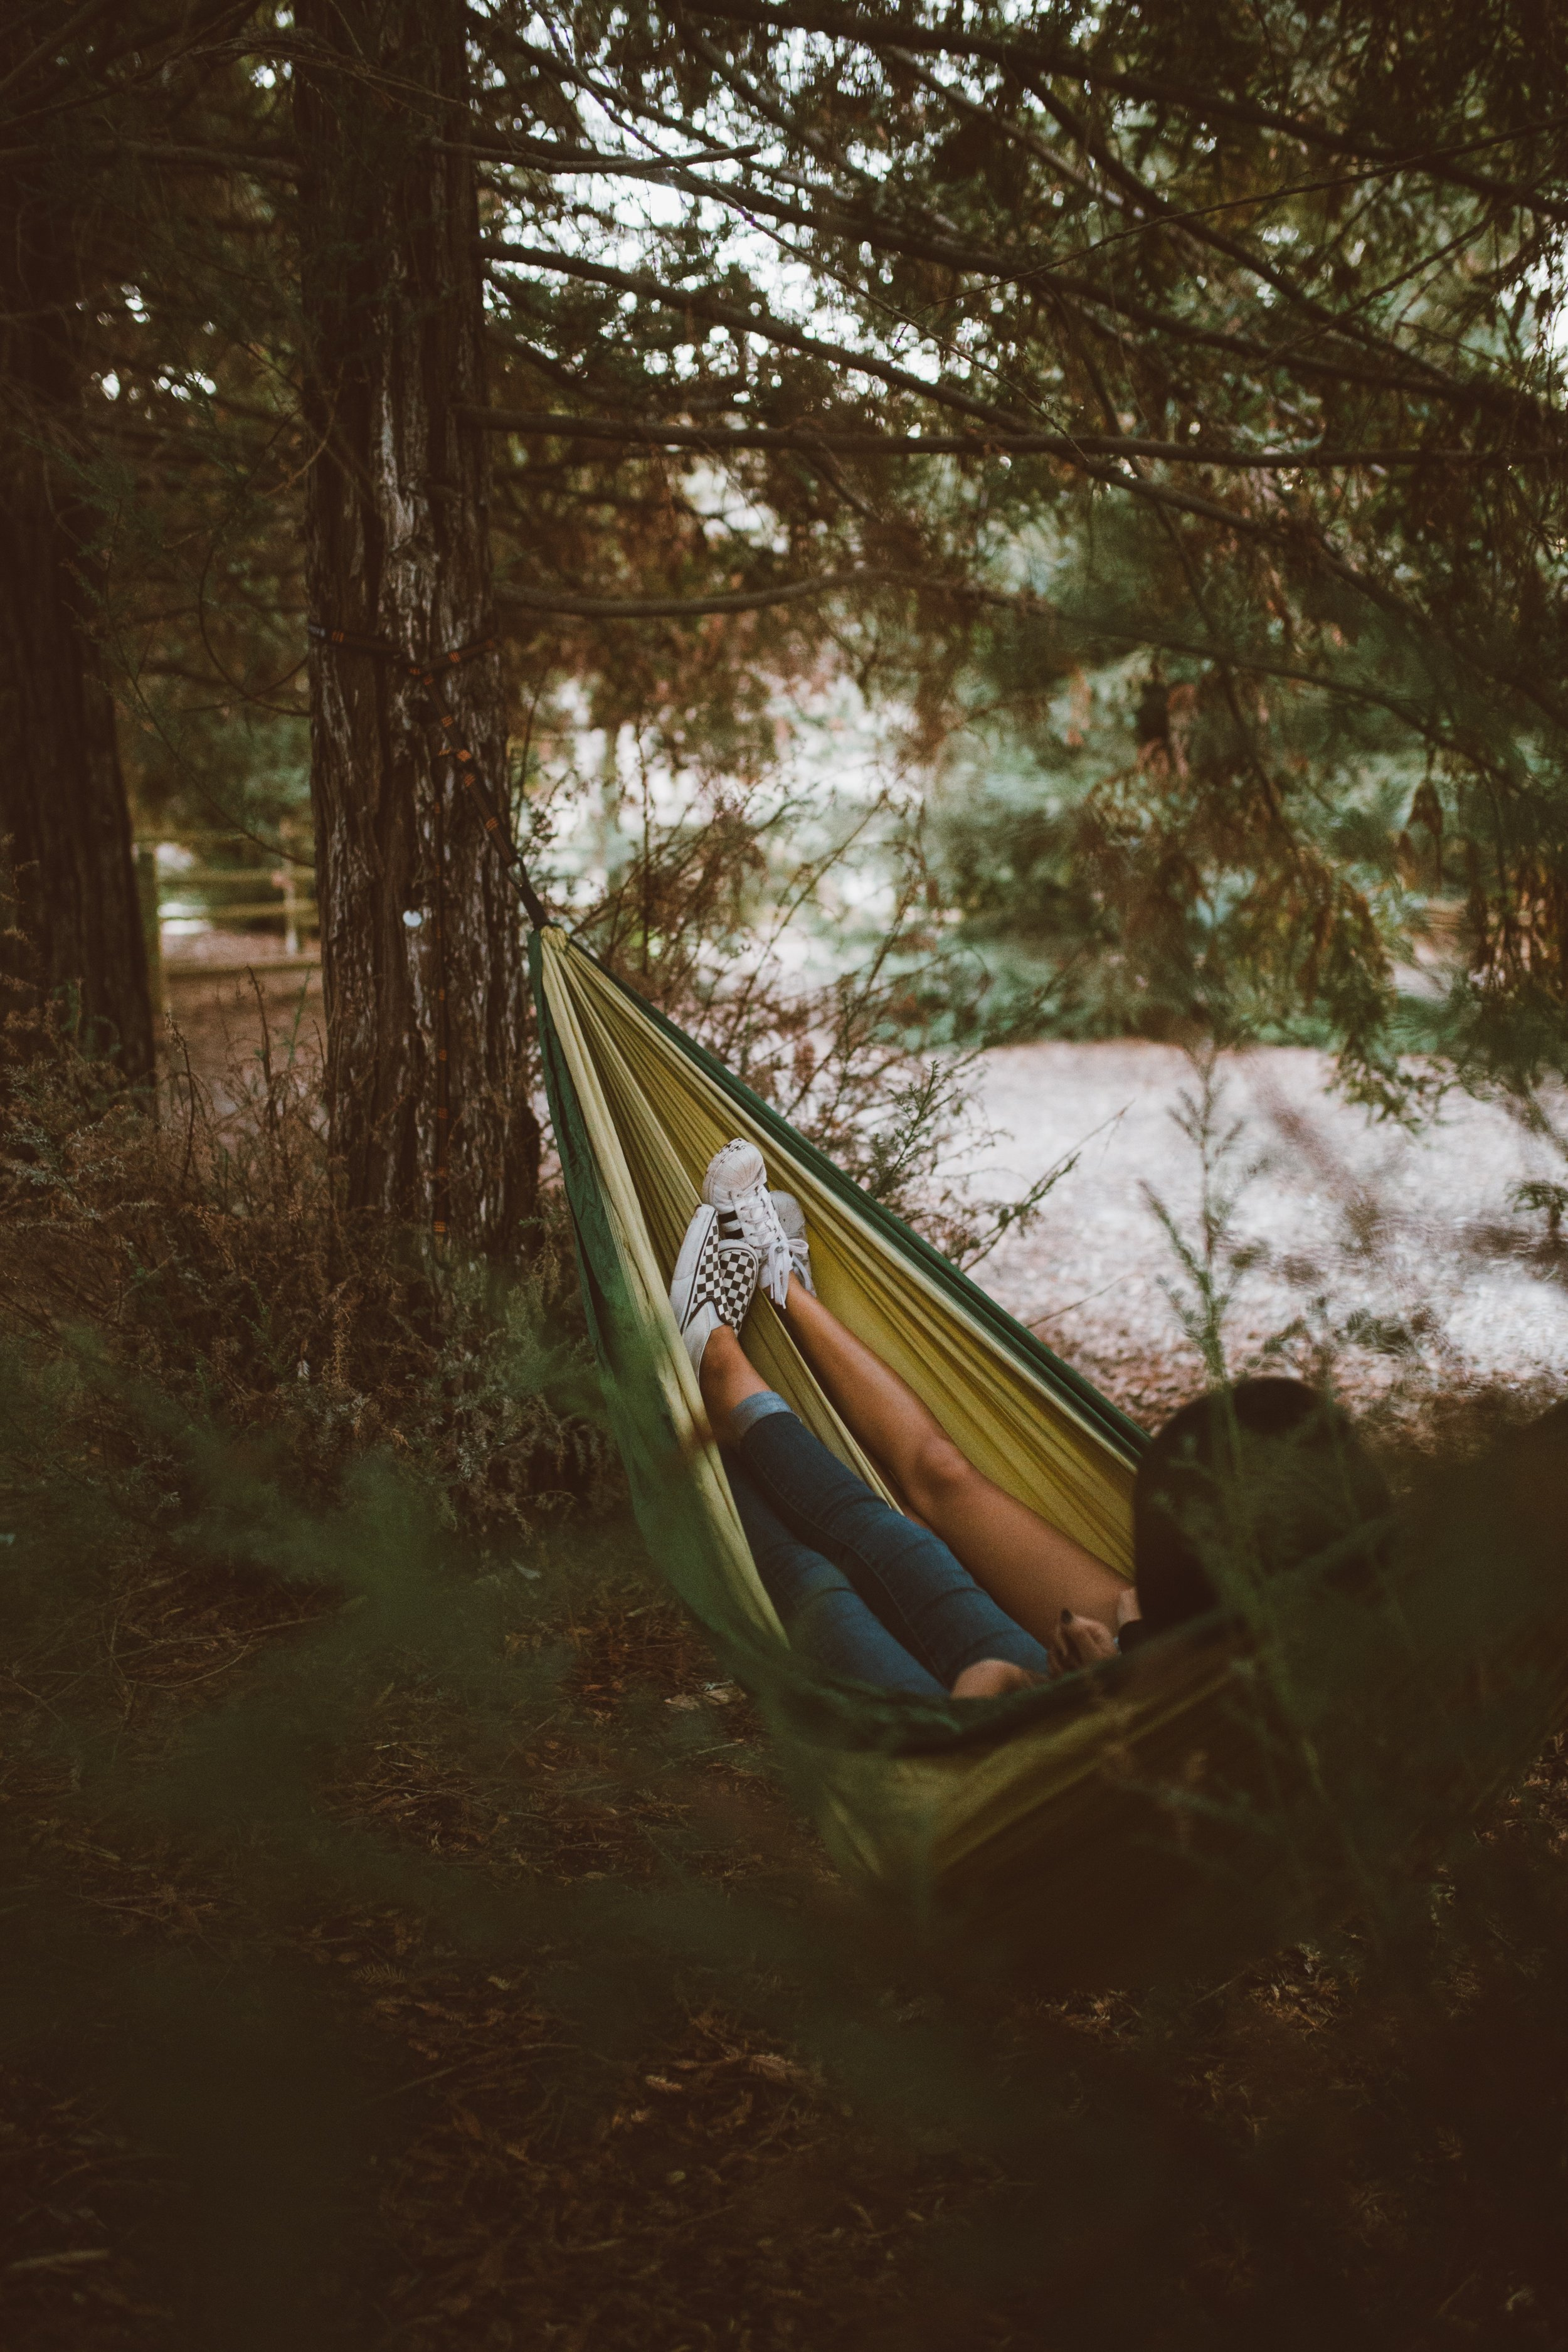 Going on a Microadventure | The Foraged Life